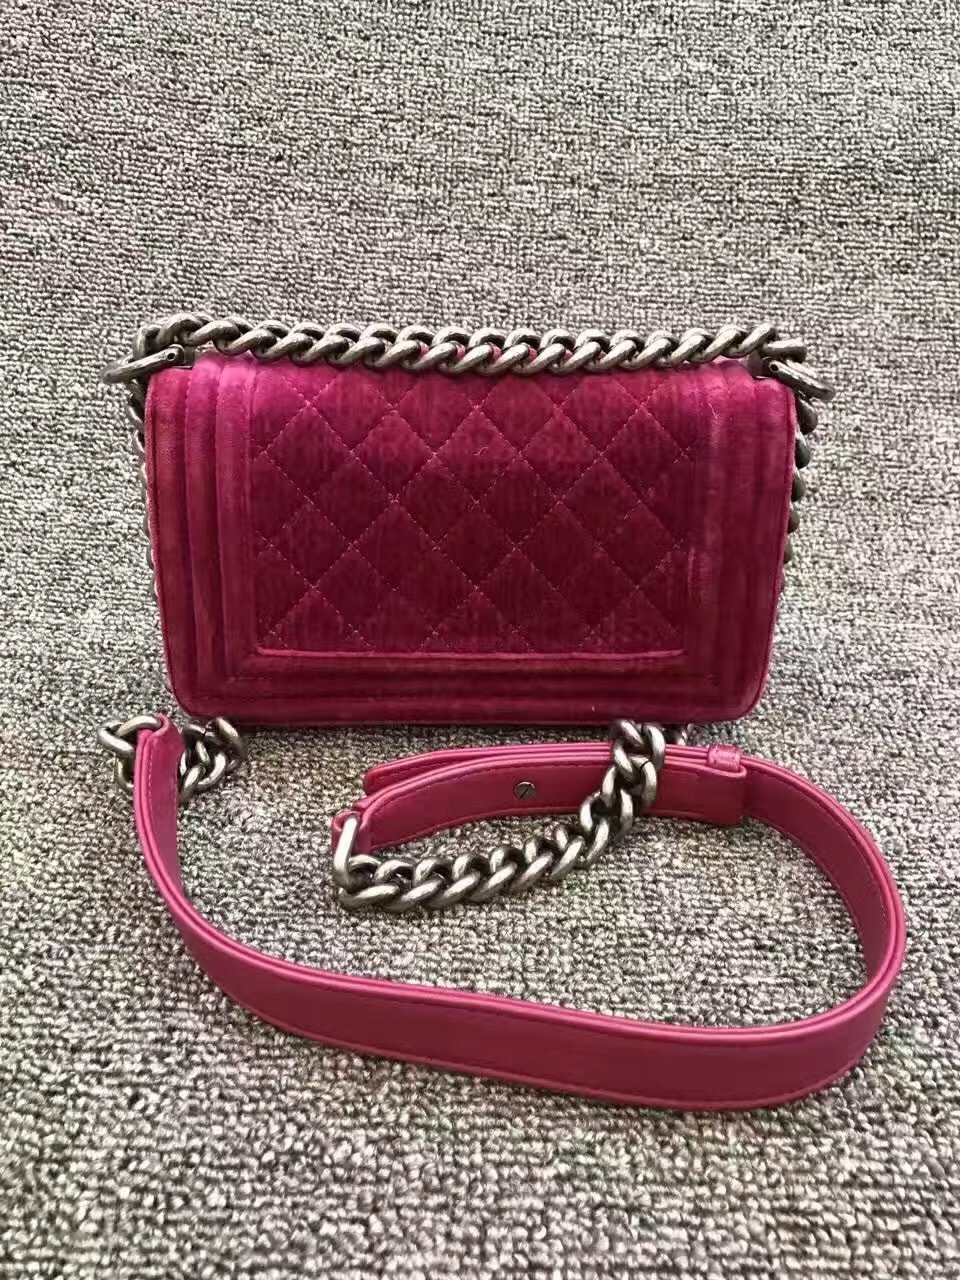 f0e0cefe0d59 Authentic Chanel Quilted Velvet Small Boy Flap Bag Pink RHW ...